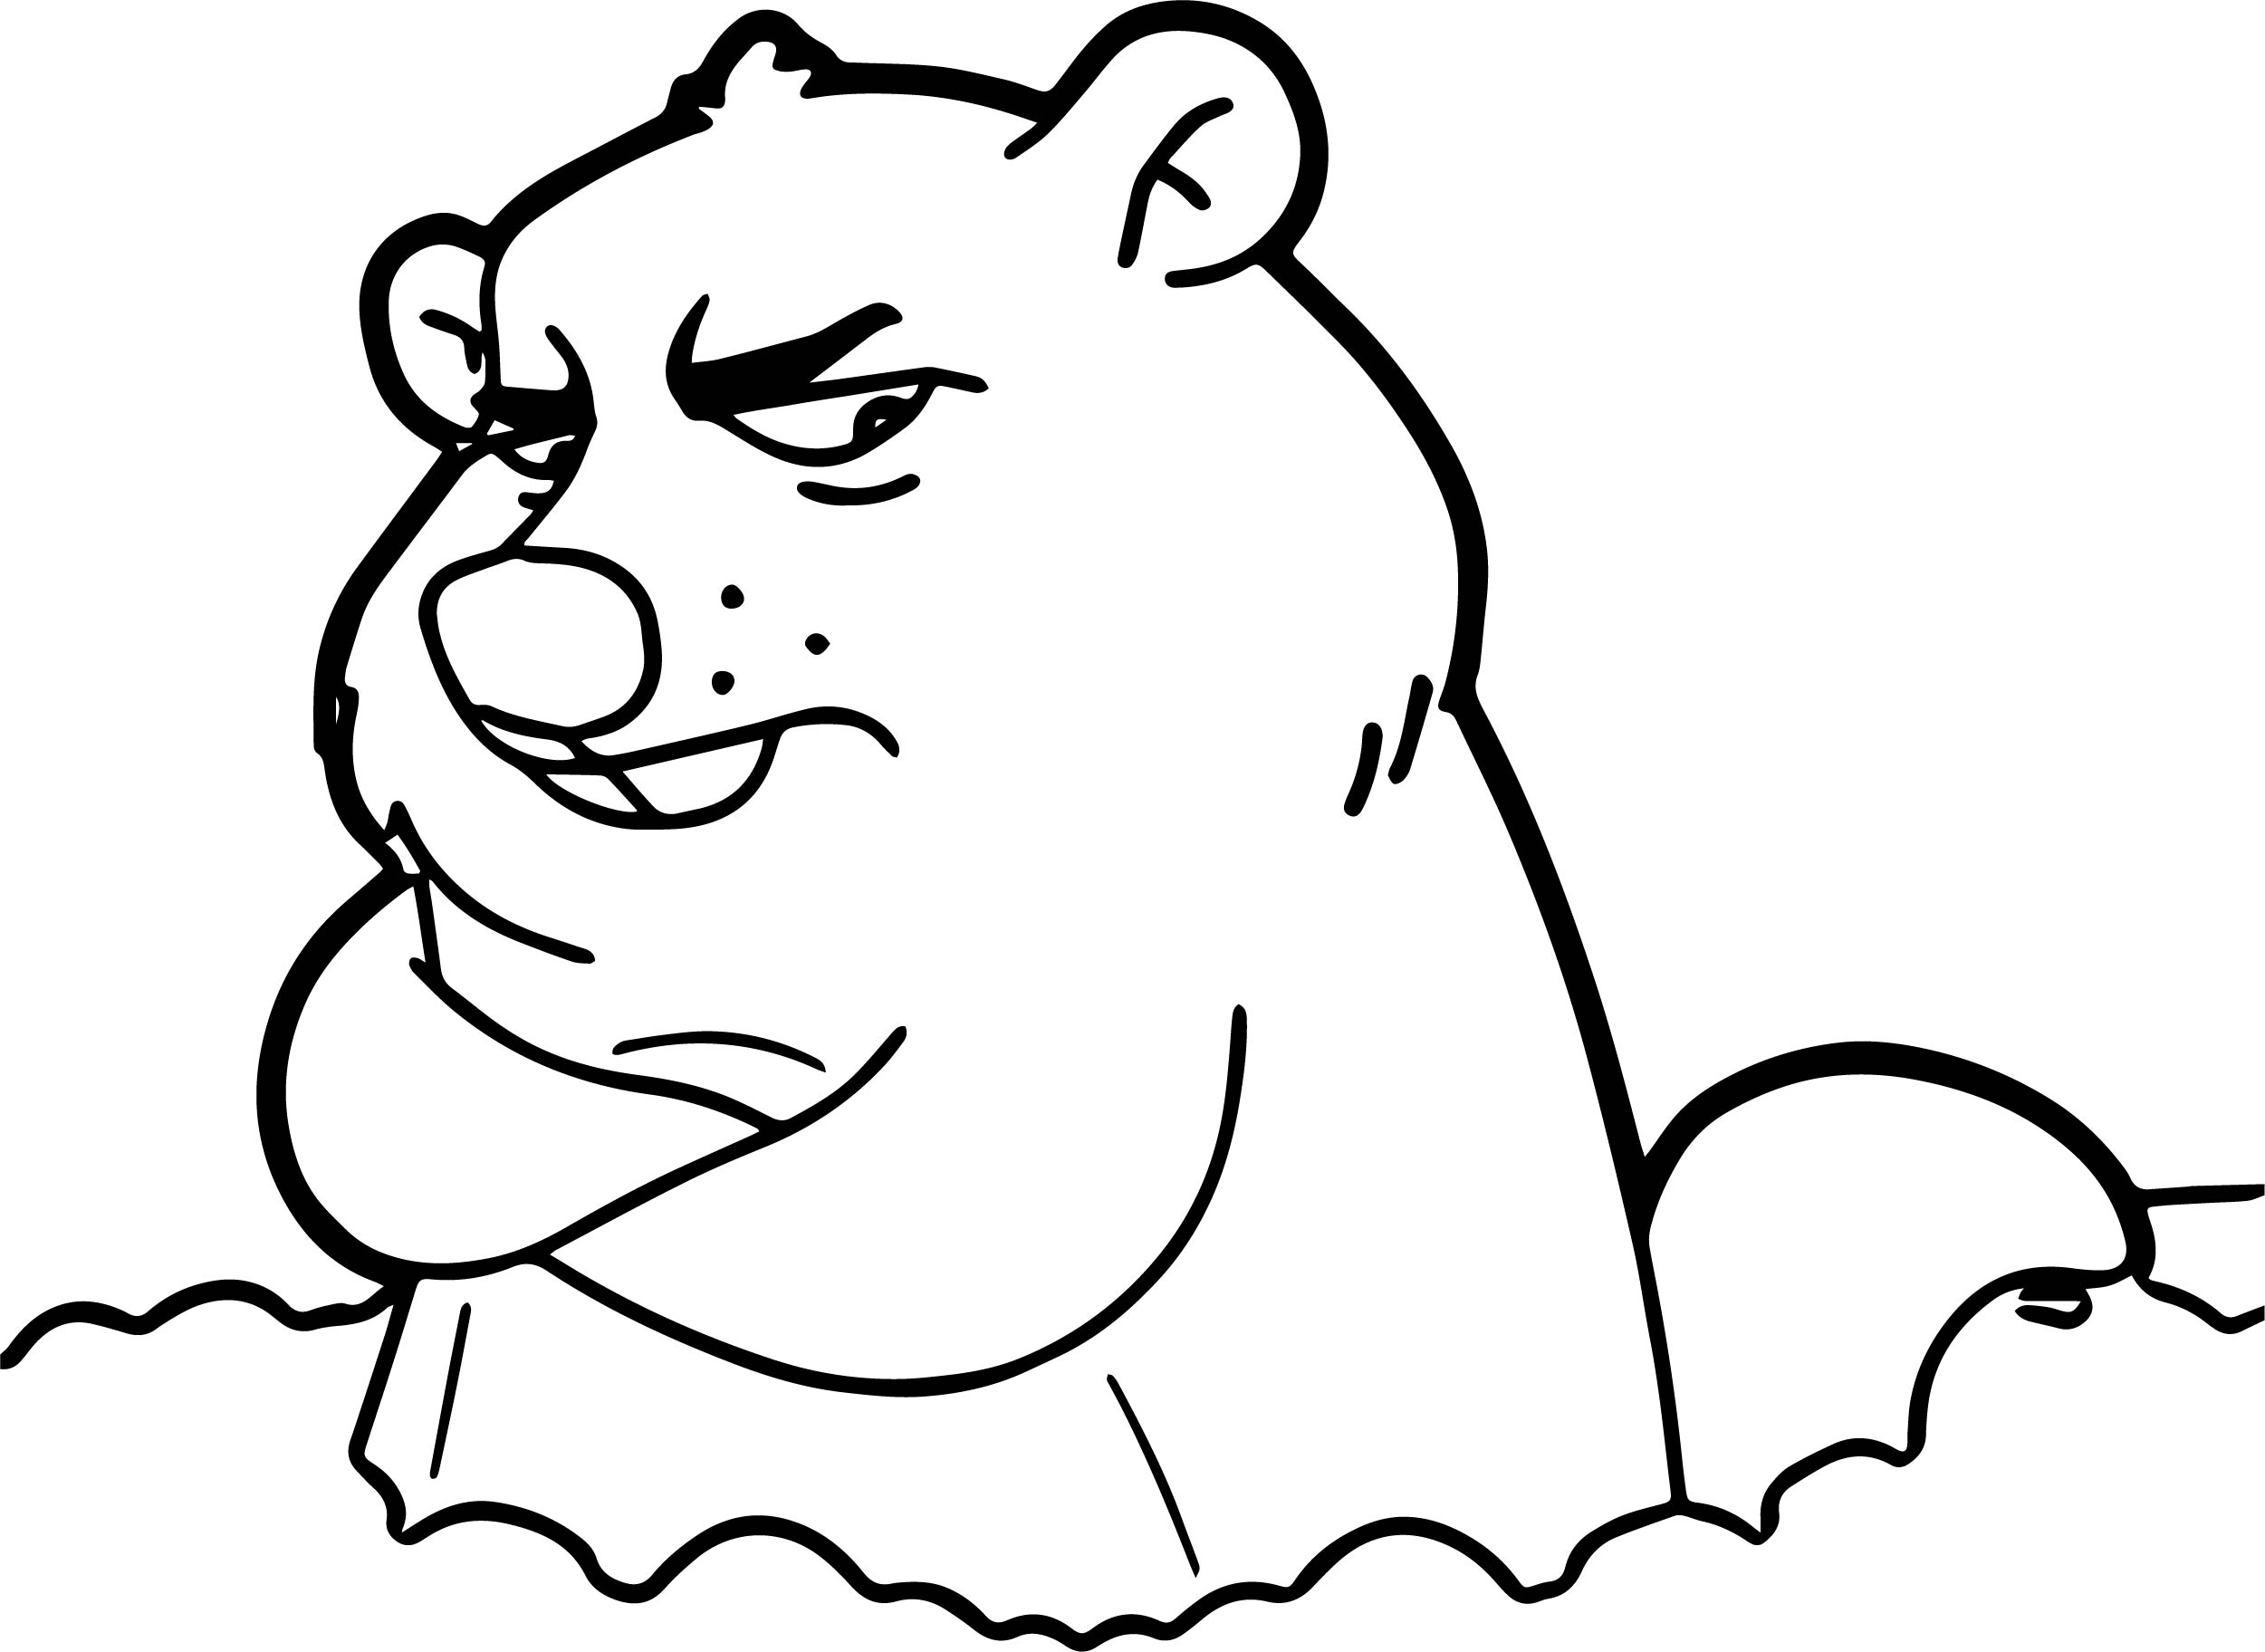 Groundhog Day Coloring Pages | Groundhog day, Groundhog day ... | 1824x2501